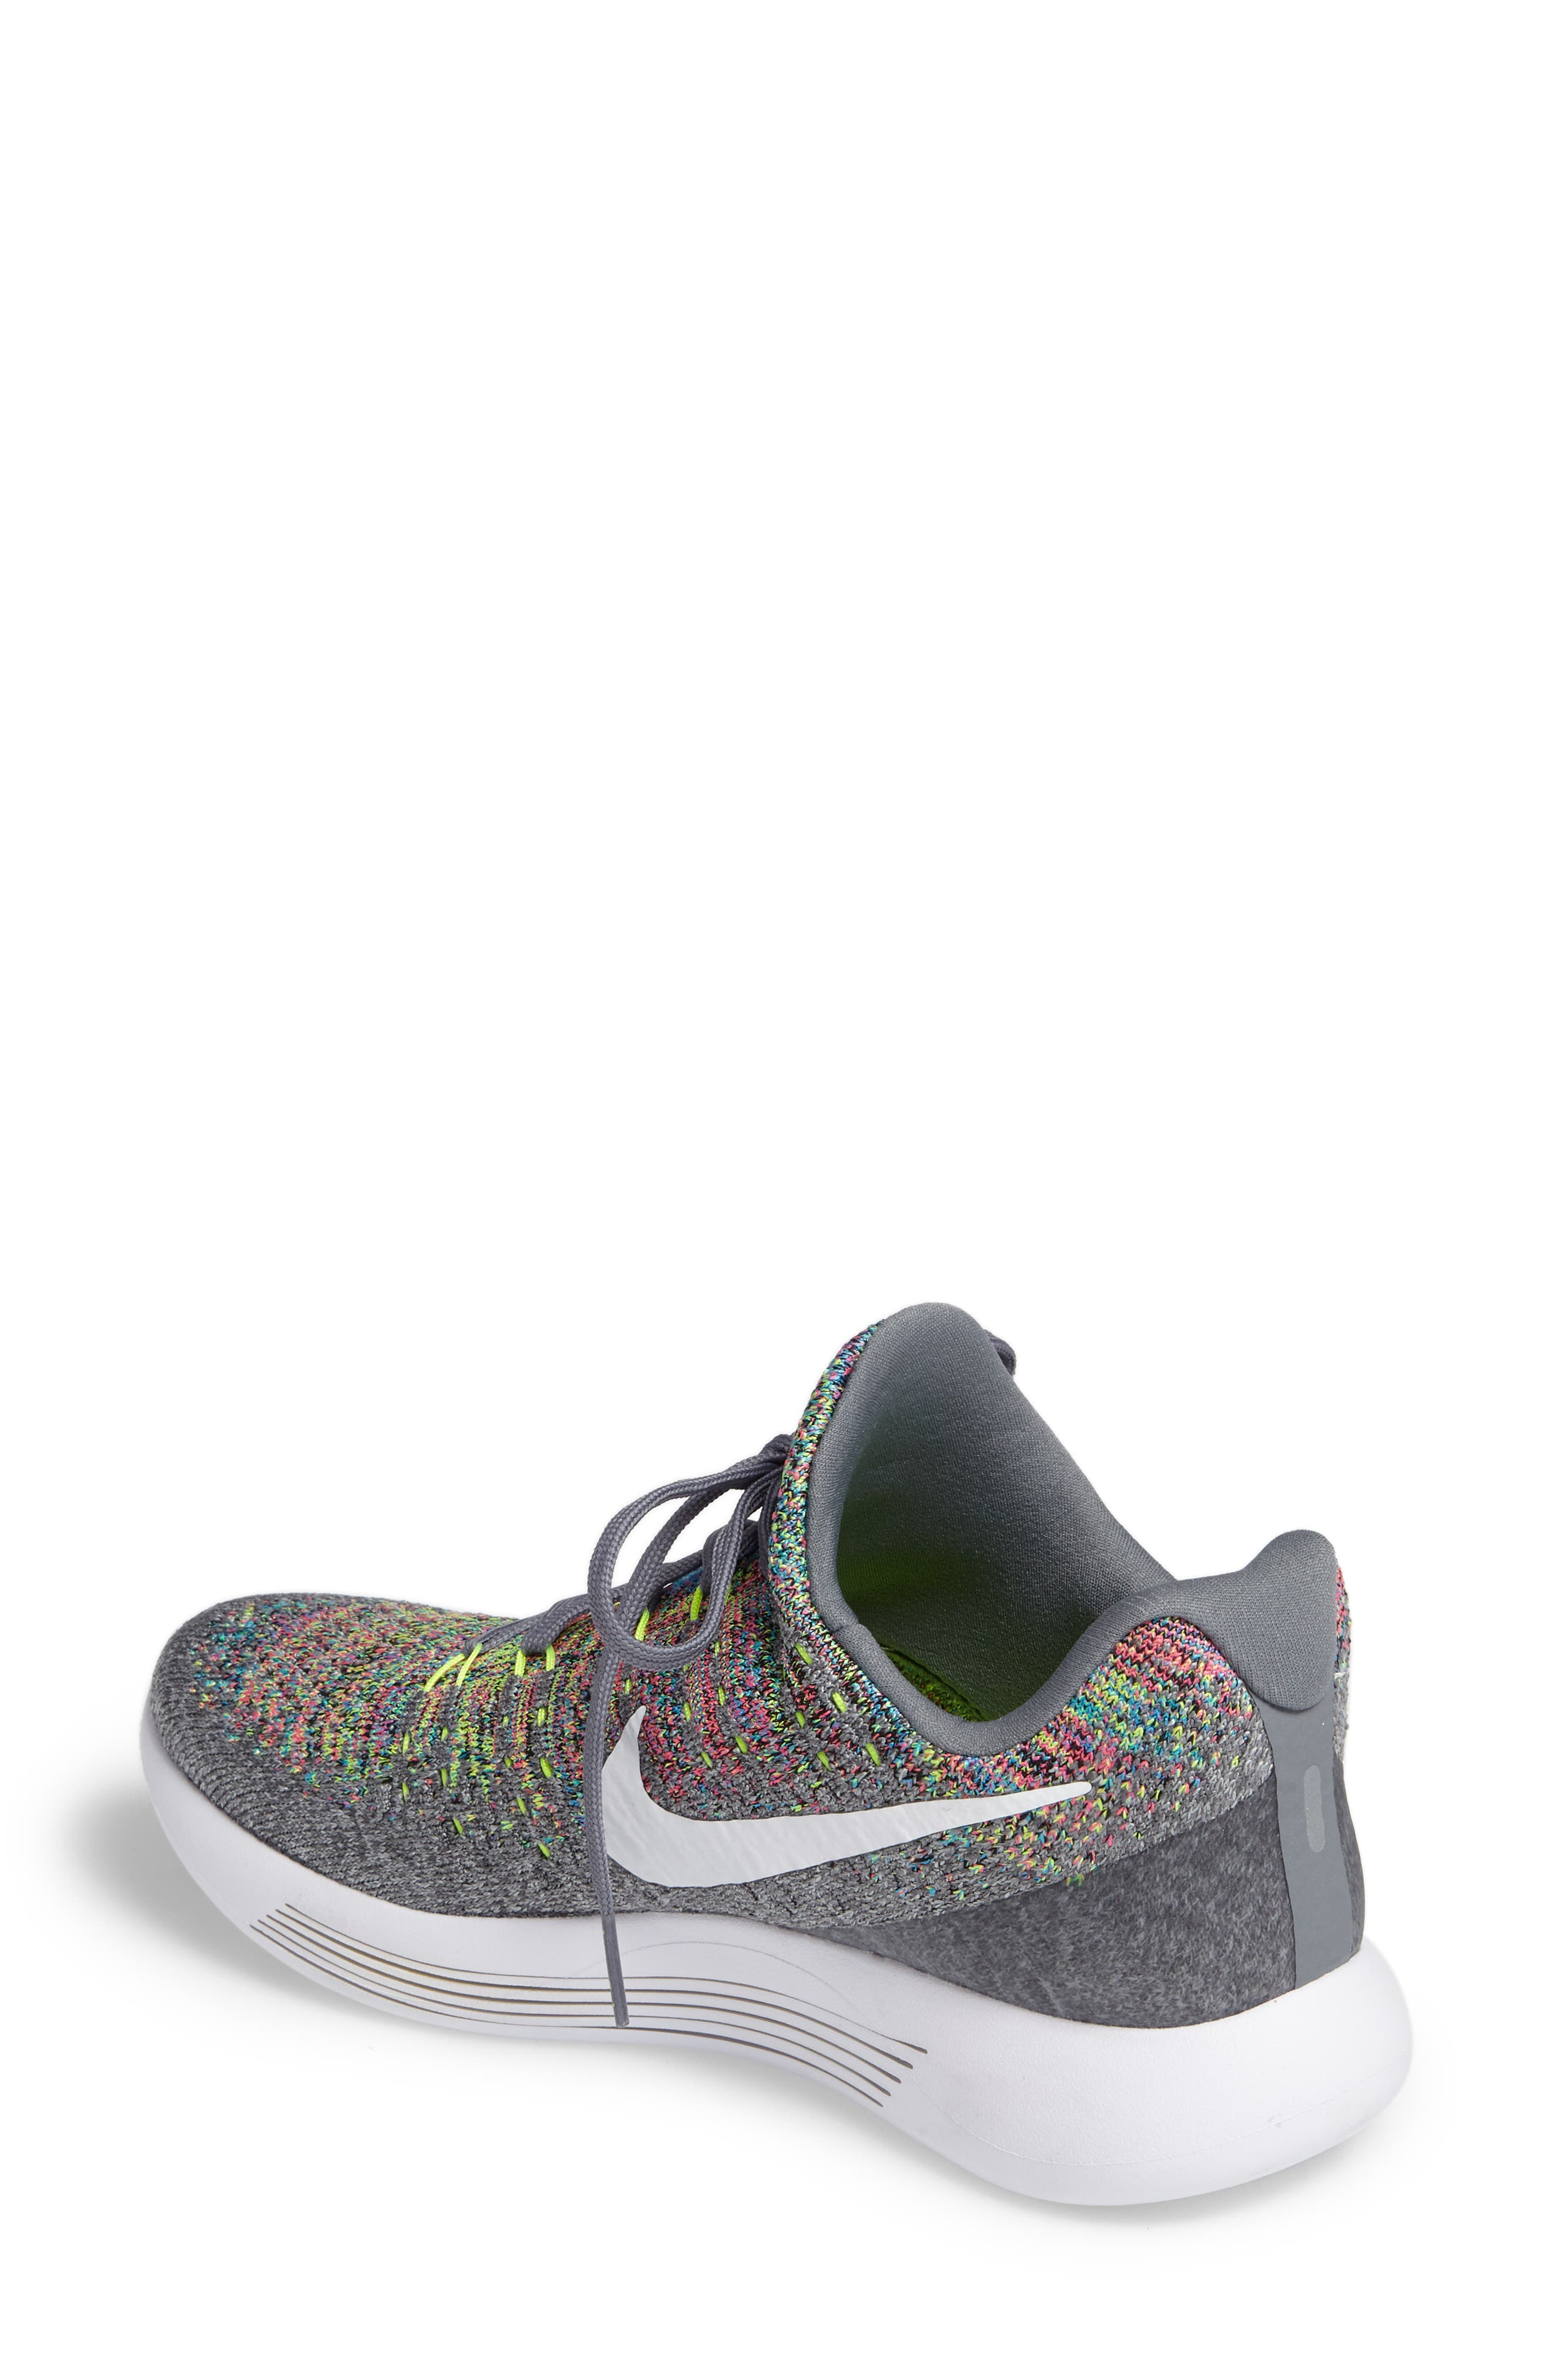 ,                             LunarEpic Low Flyknit 2 Running Shoe,                             Alternate thumbnail 32, color,                             023